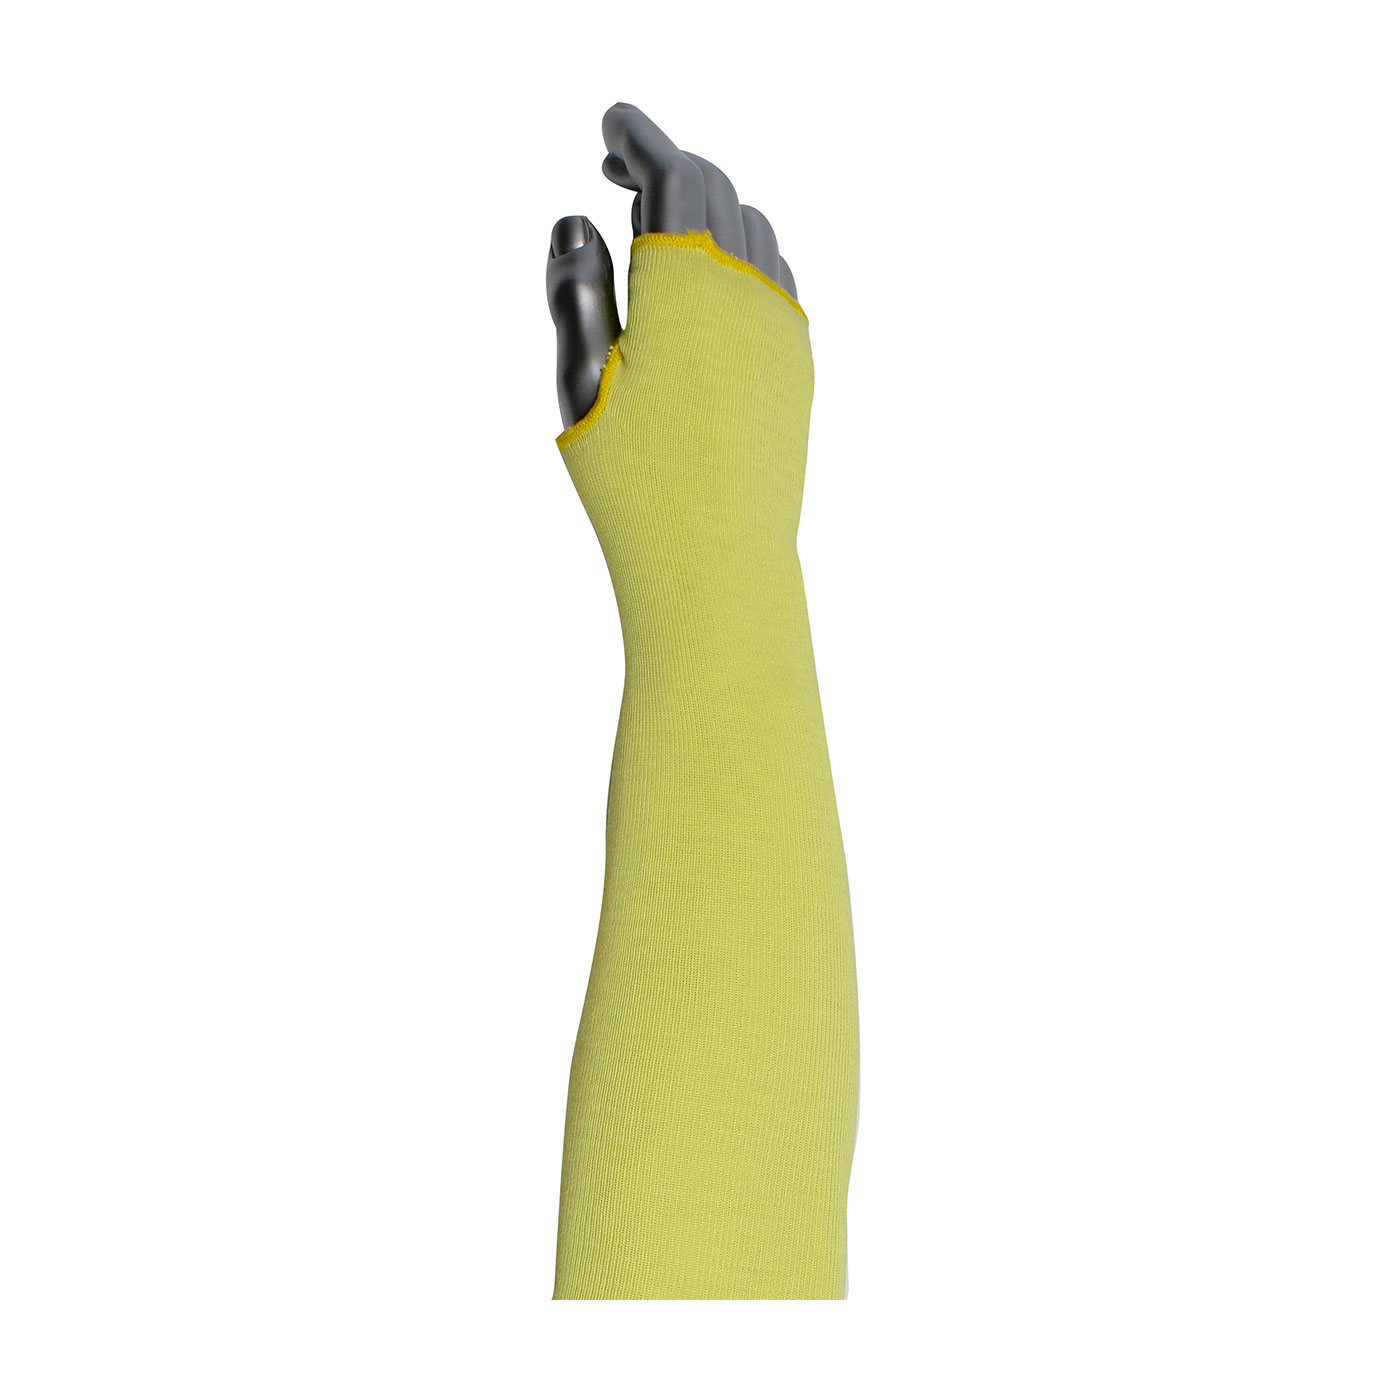 2-Ply Kevlar® Sleeve with Thumb Hole, Yellow, 12""